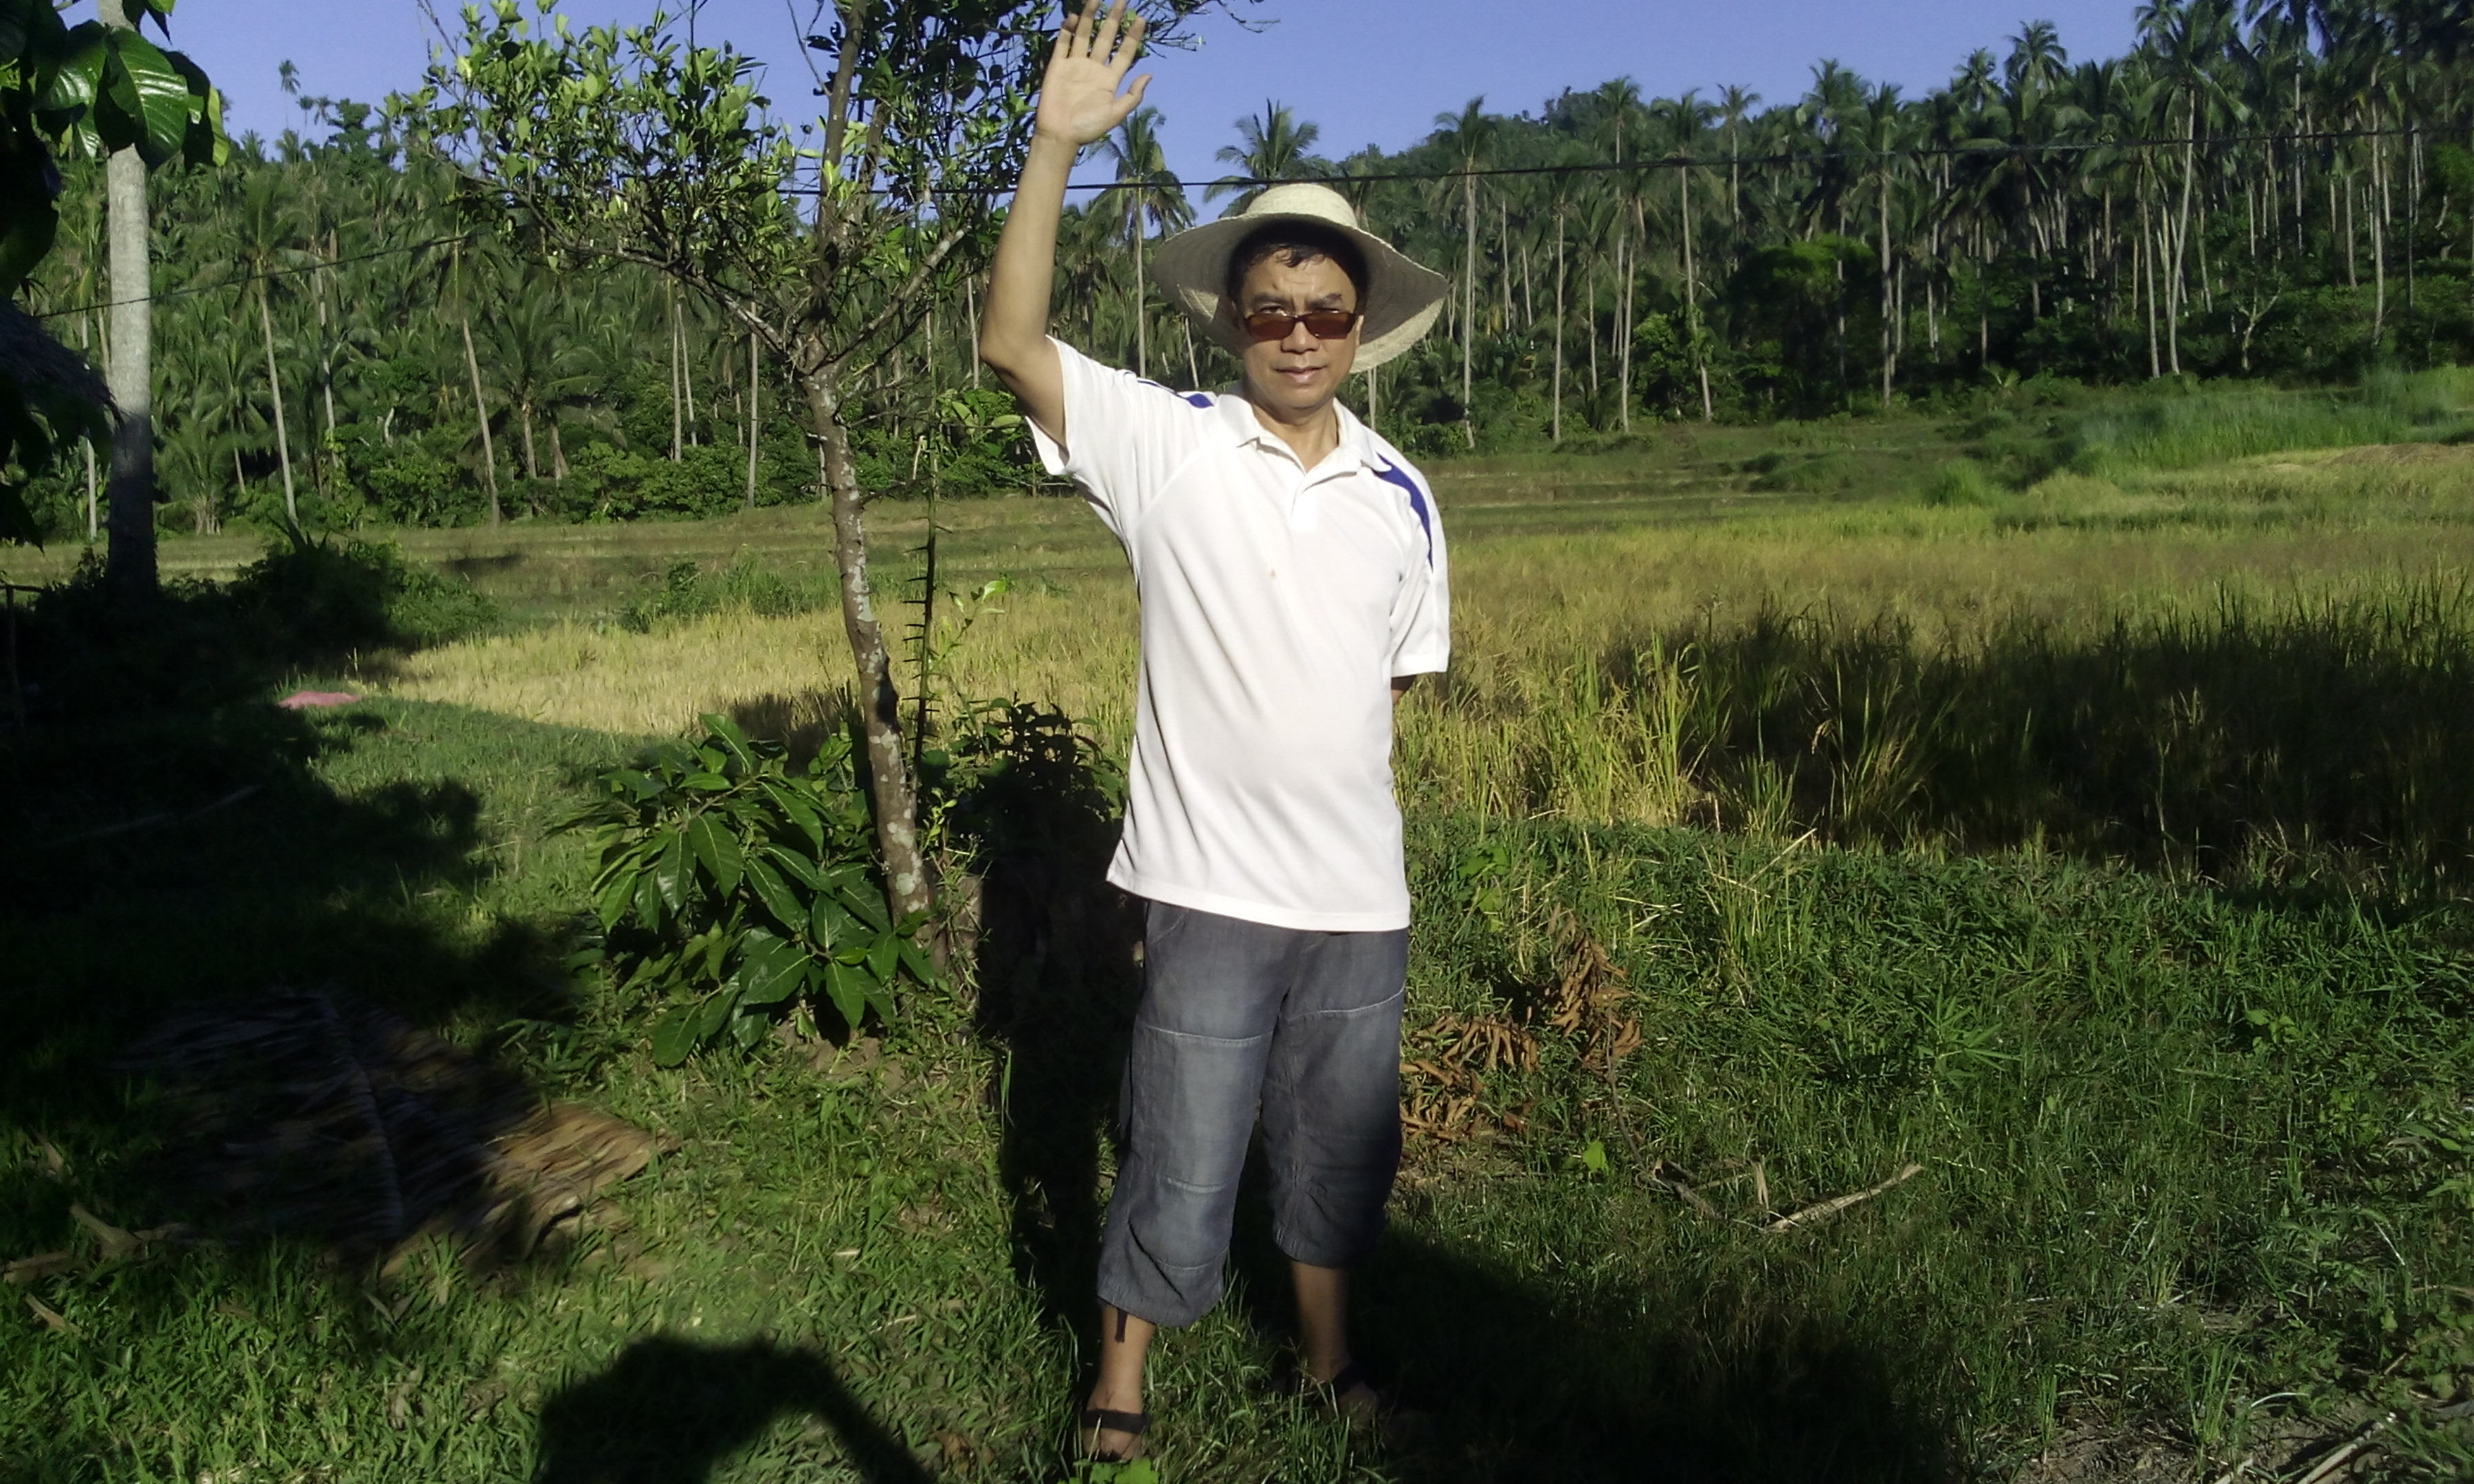 This photo was taken while I was visiting my grandfather's farm to introduce organic farming in Quezon province,  the Philippines.